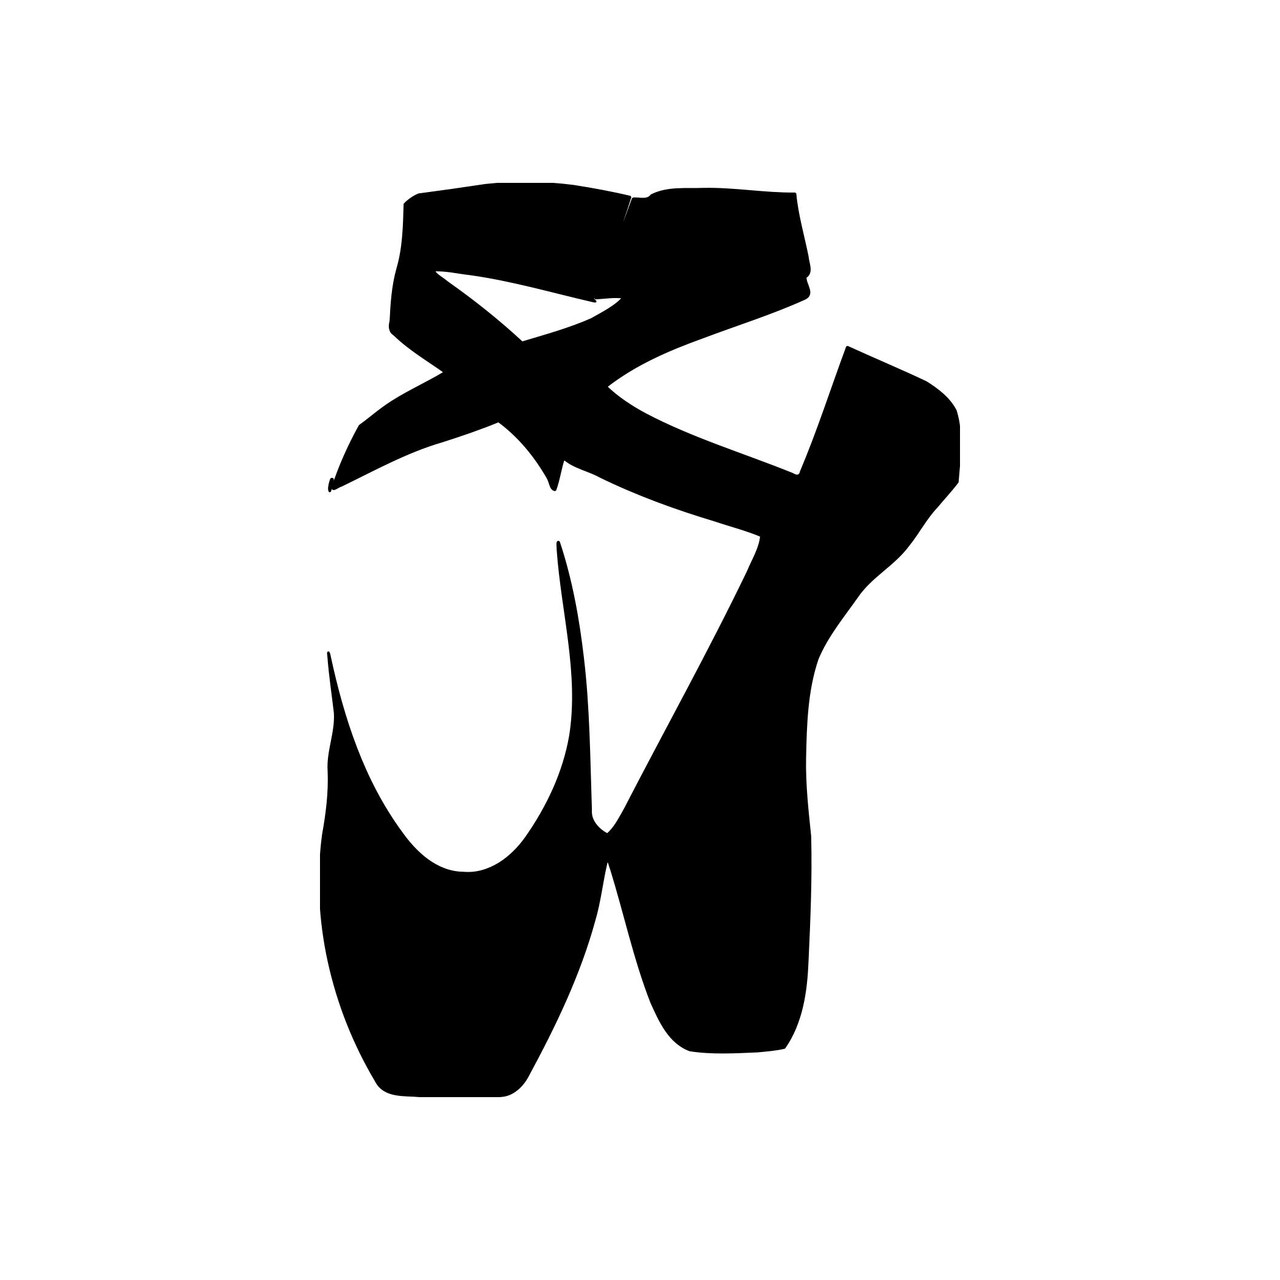 Ballet Shoes Vinyl Decal Sticker Ballerina Pointe Dance Slippers Minglewood Trading